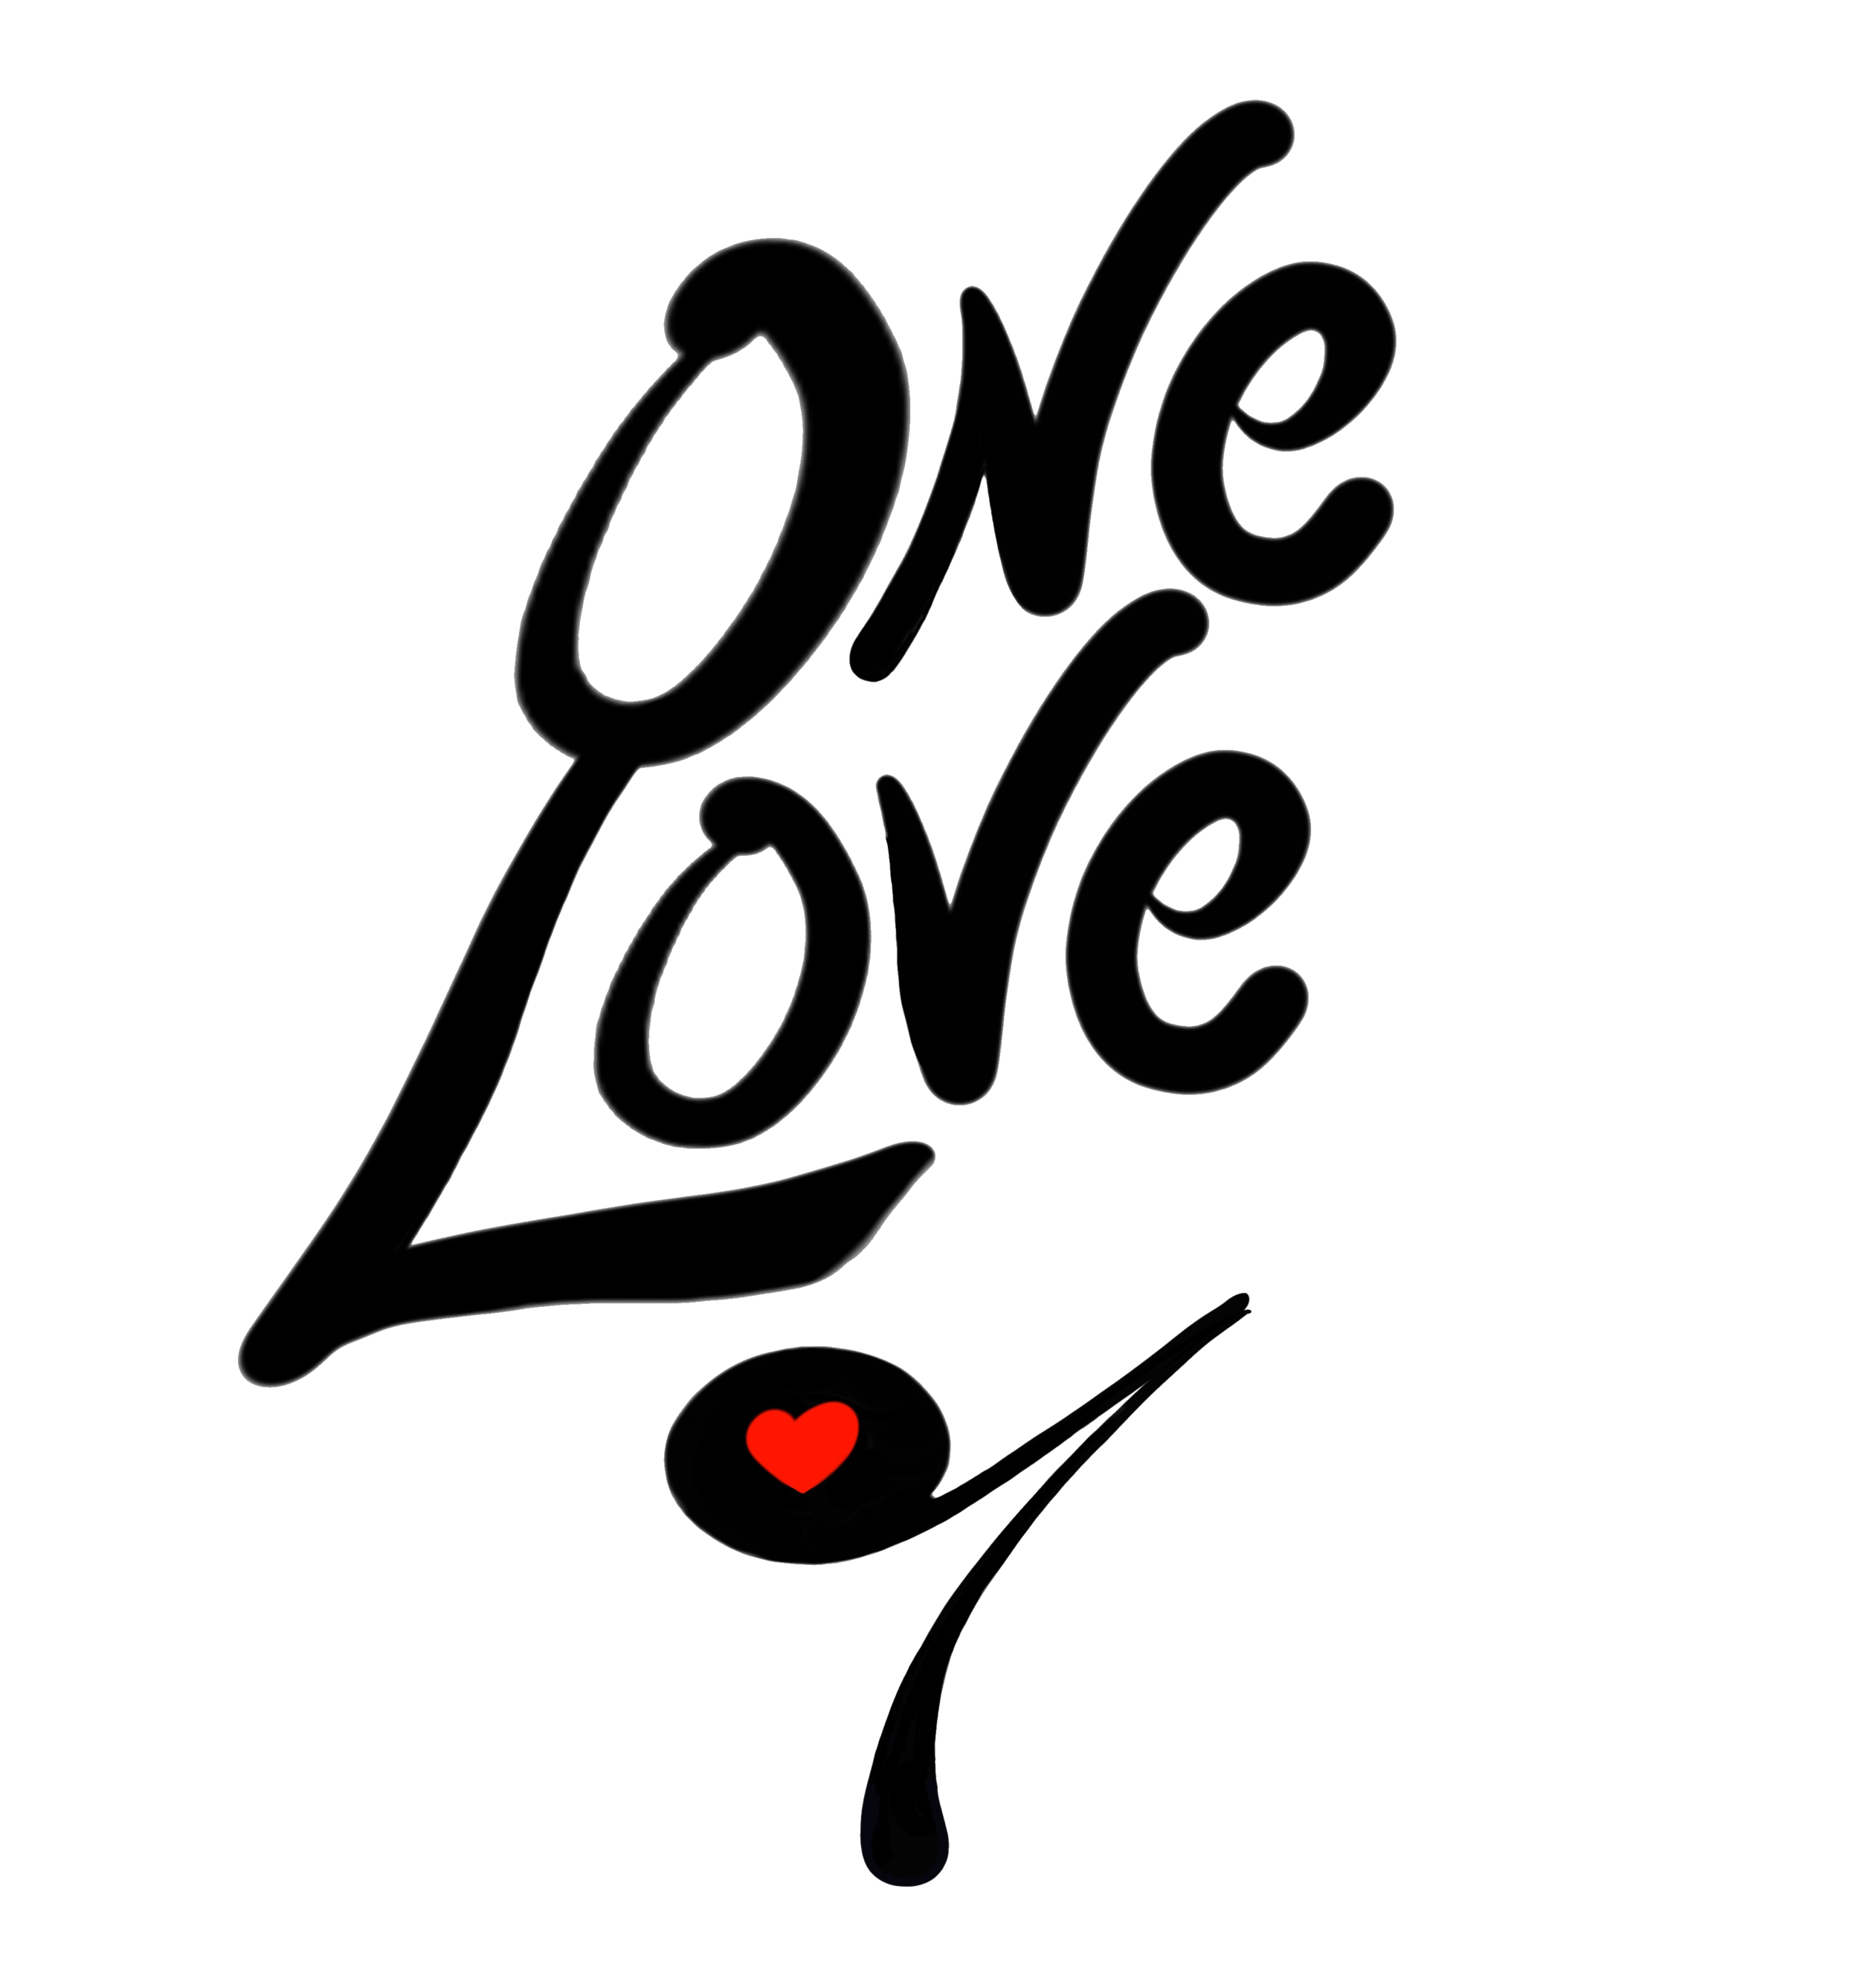 one_love_logo.png